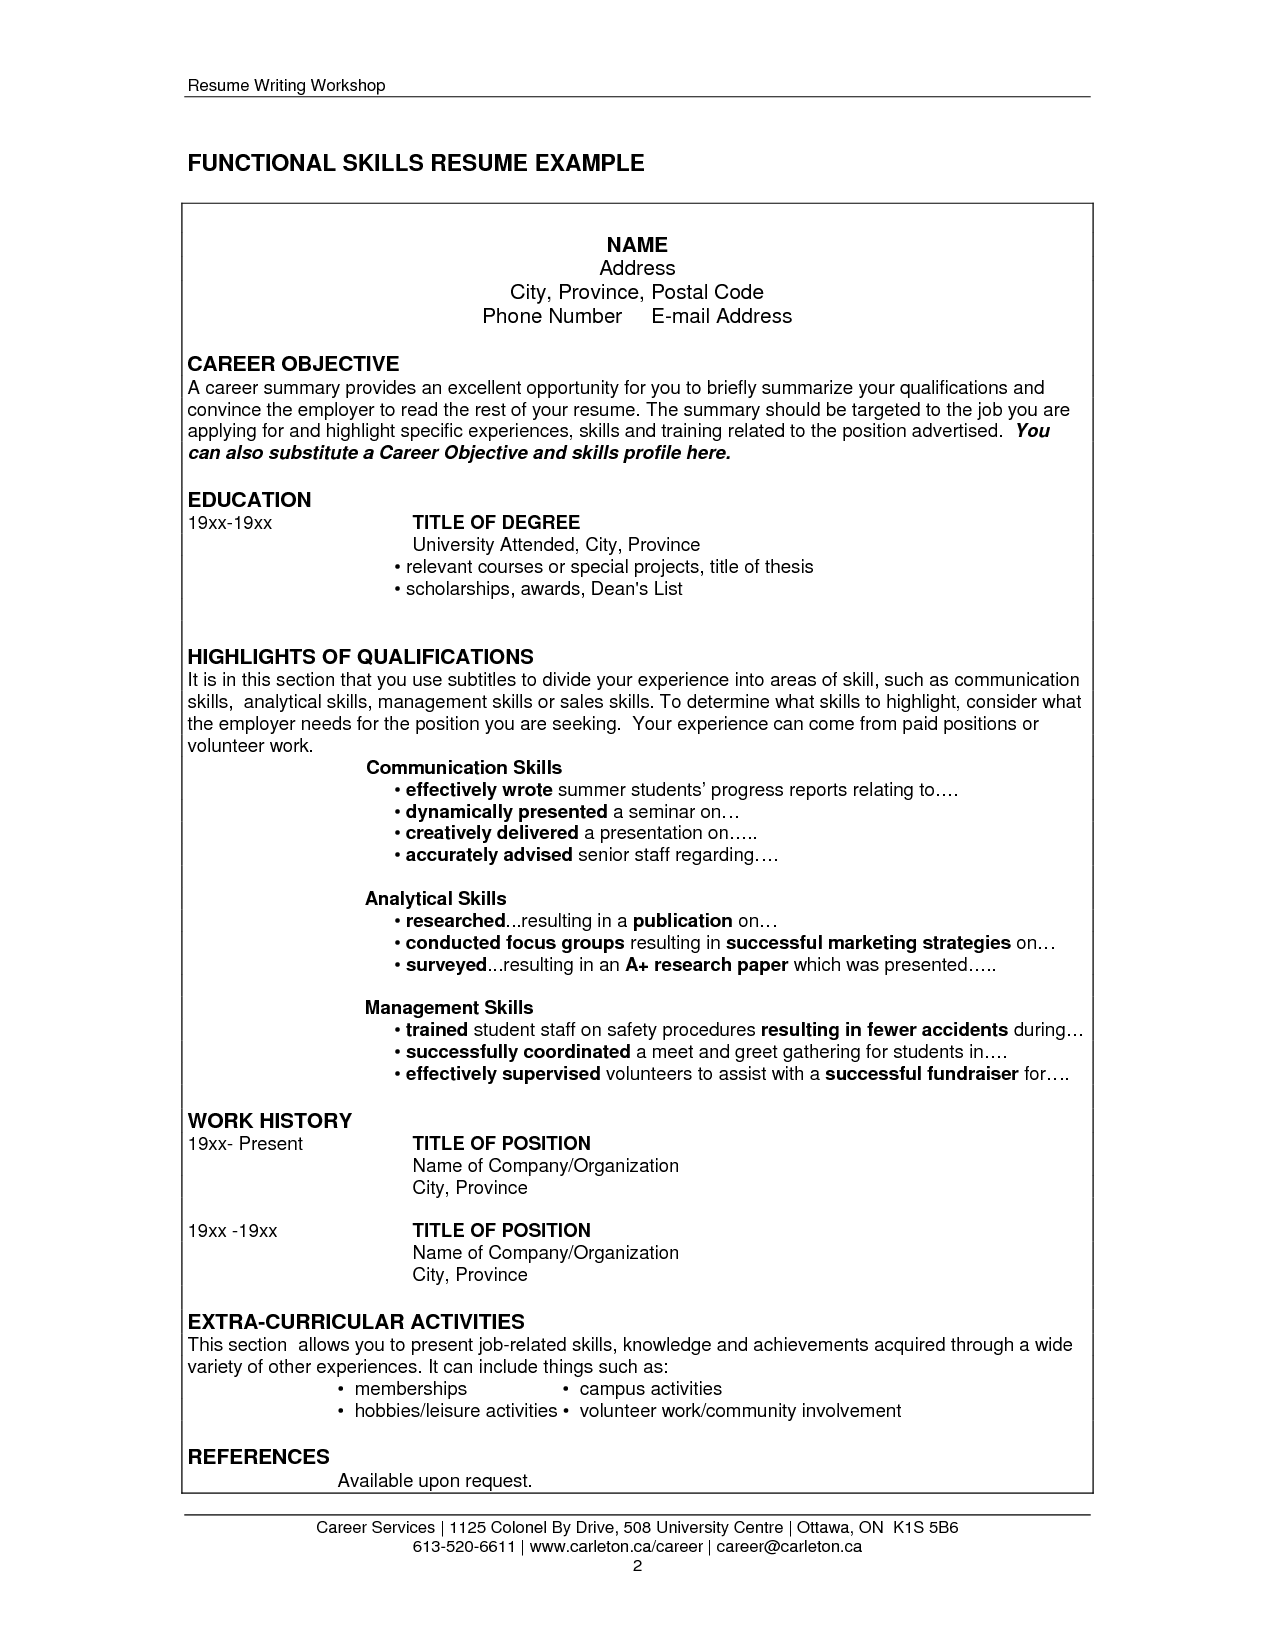 Free Resumes Templates To Download Captivating Image Result For Skills Resume Format  Business  Pinterest